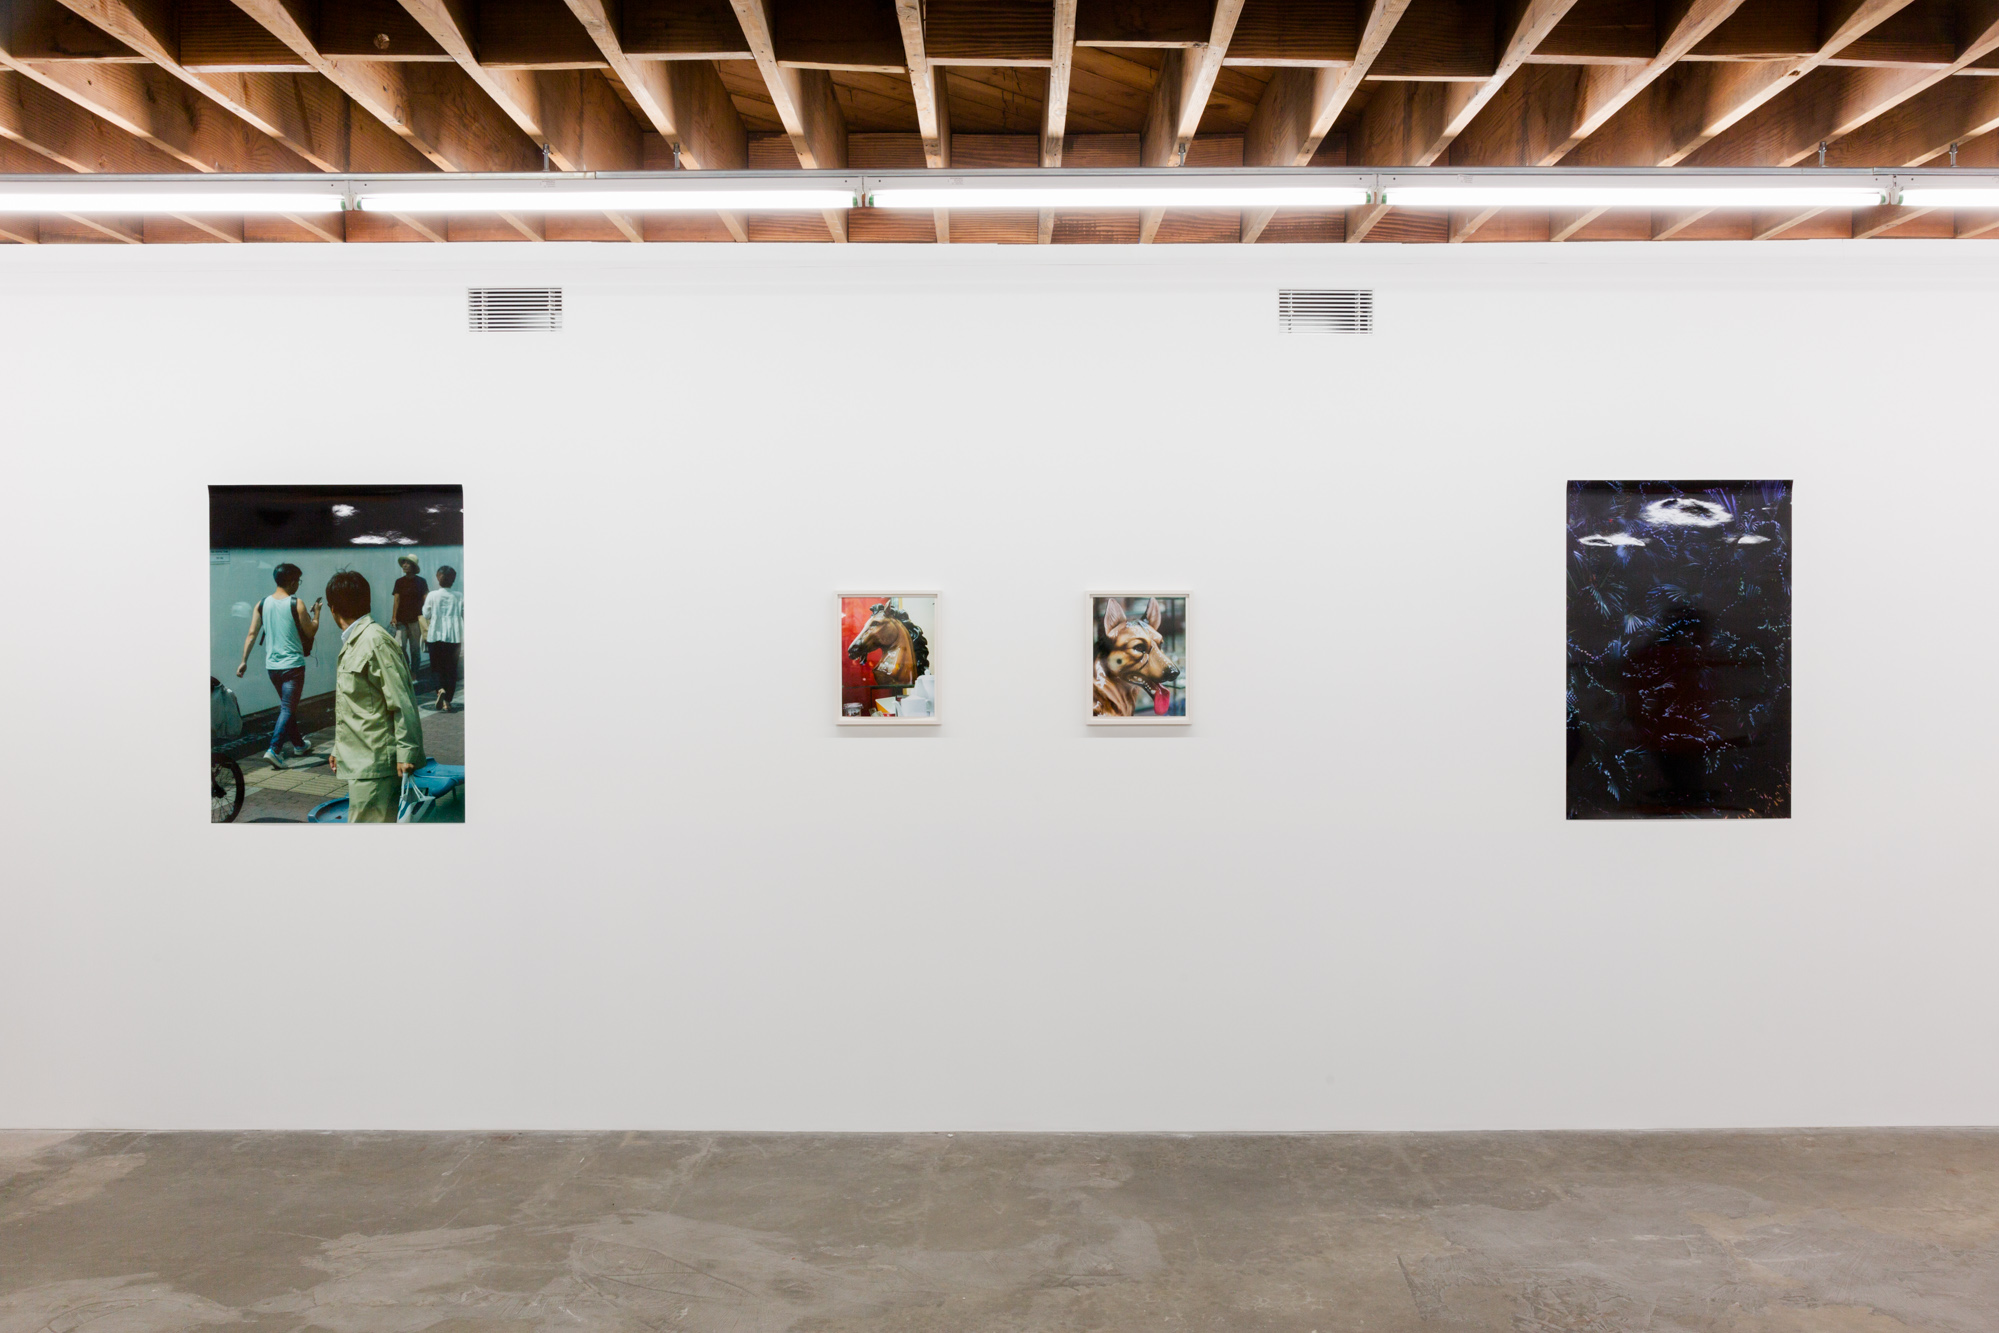 Daniel Terna and Evan Whale_LY Gallery_Exhibition Views_Daniel Terna_2019_websize-18.jpg